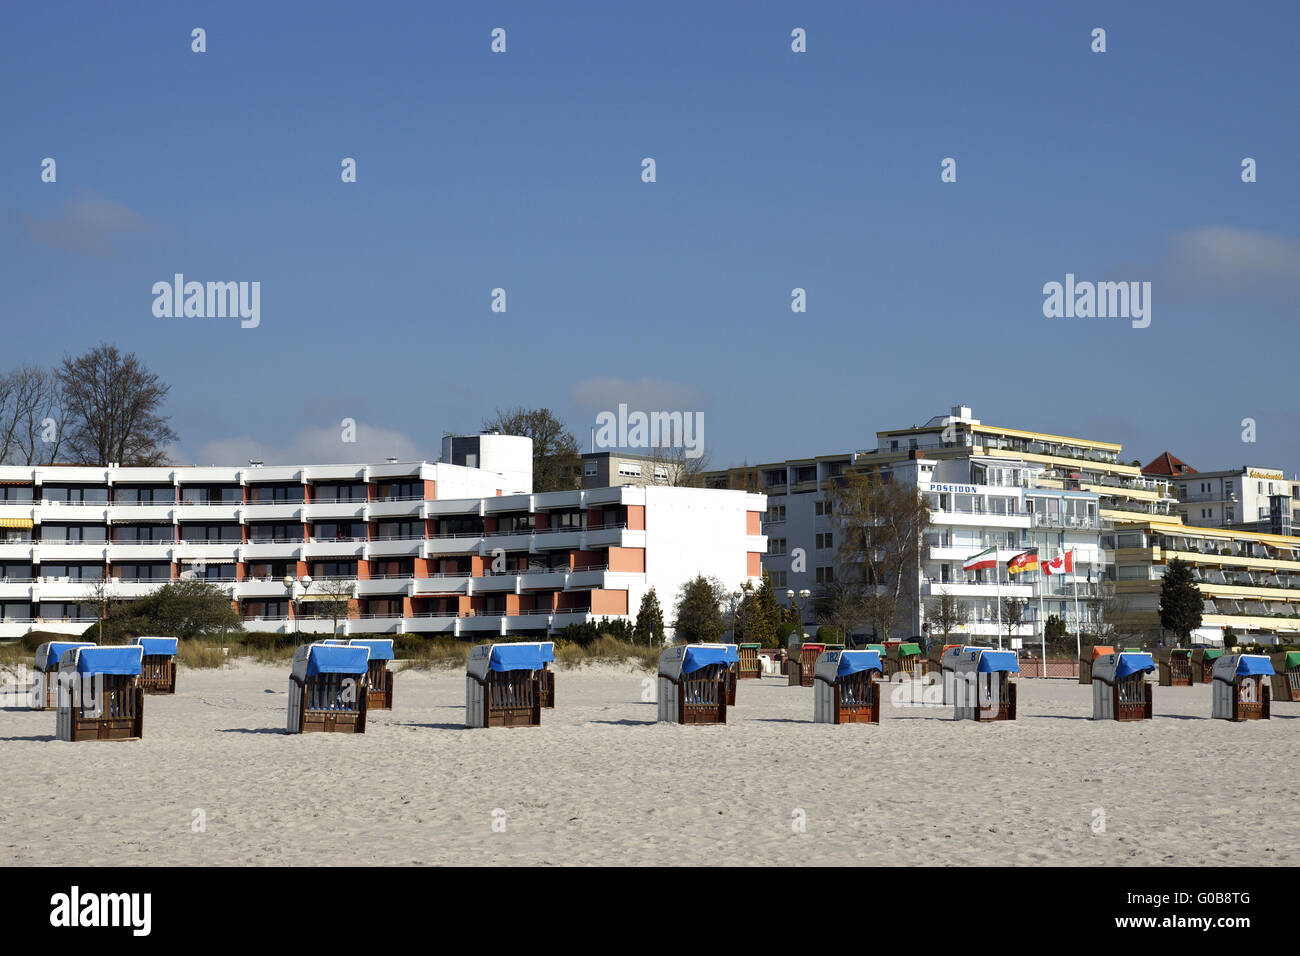 On the beach in Groemitz, Baltic Sea, Germany - Stock Image